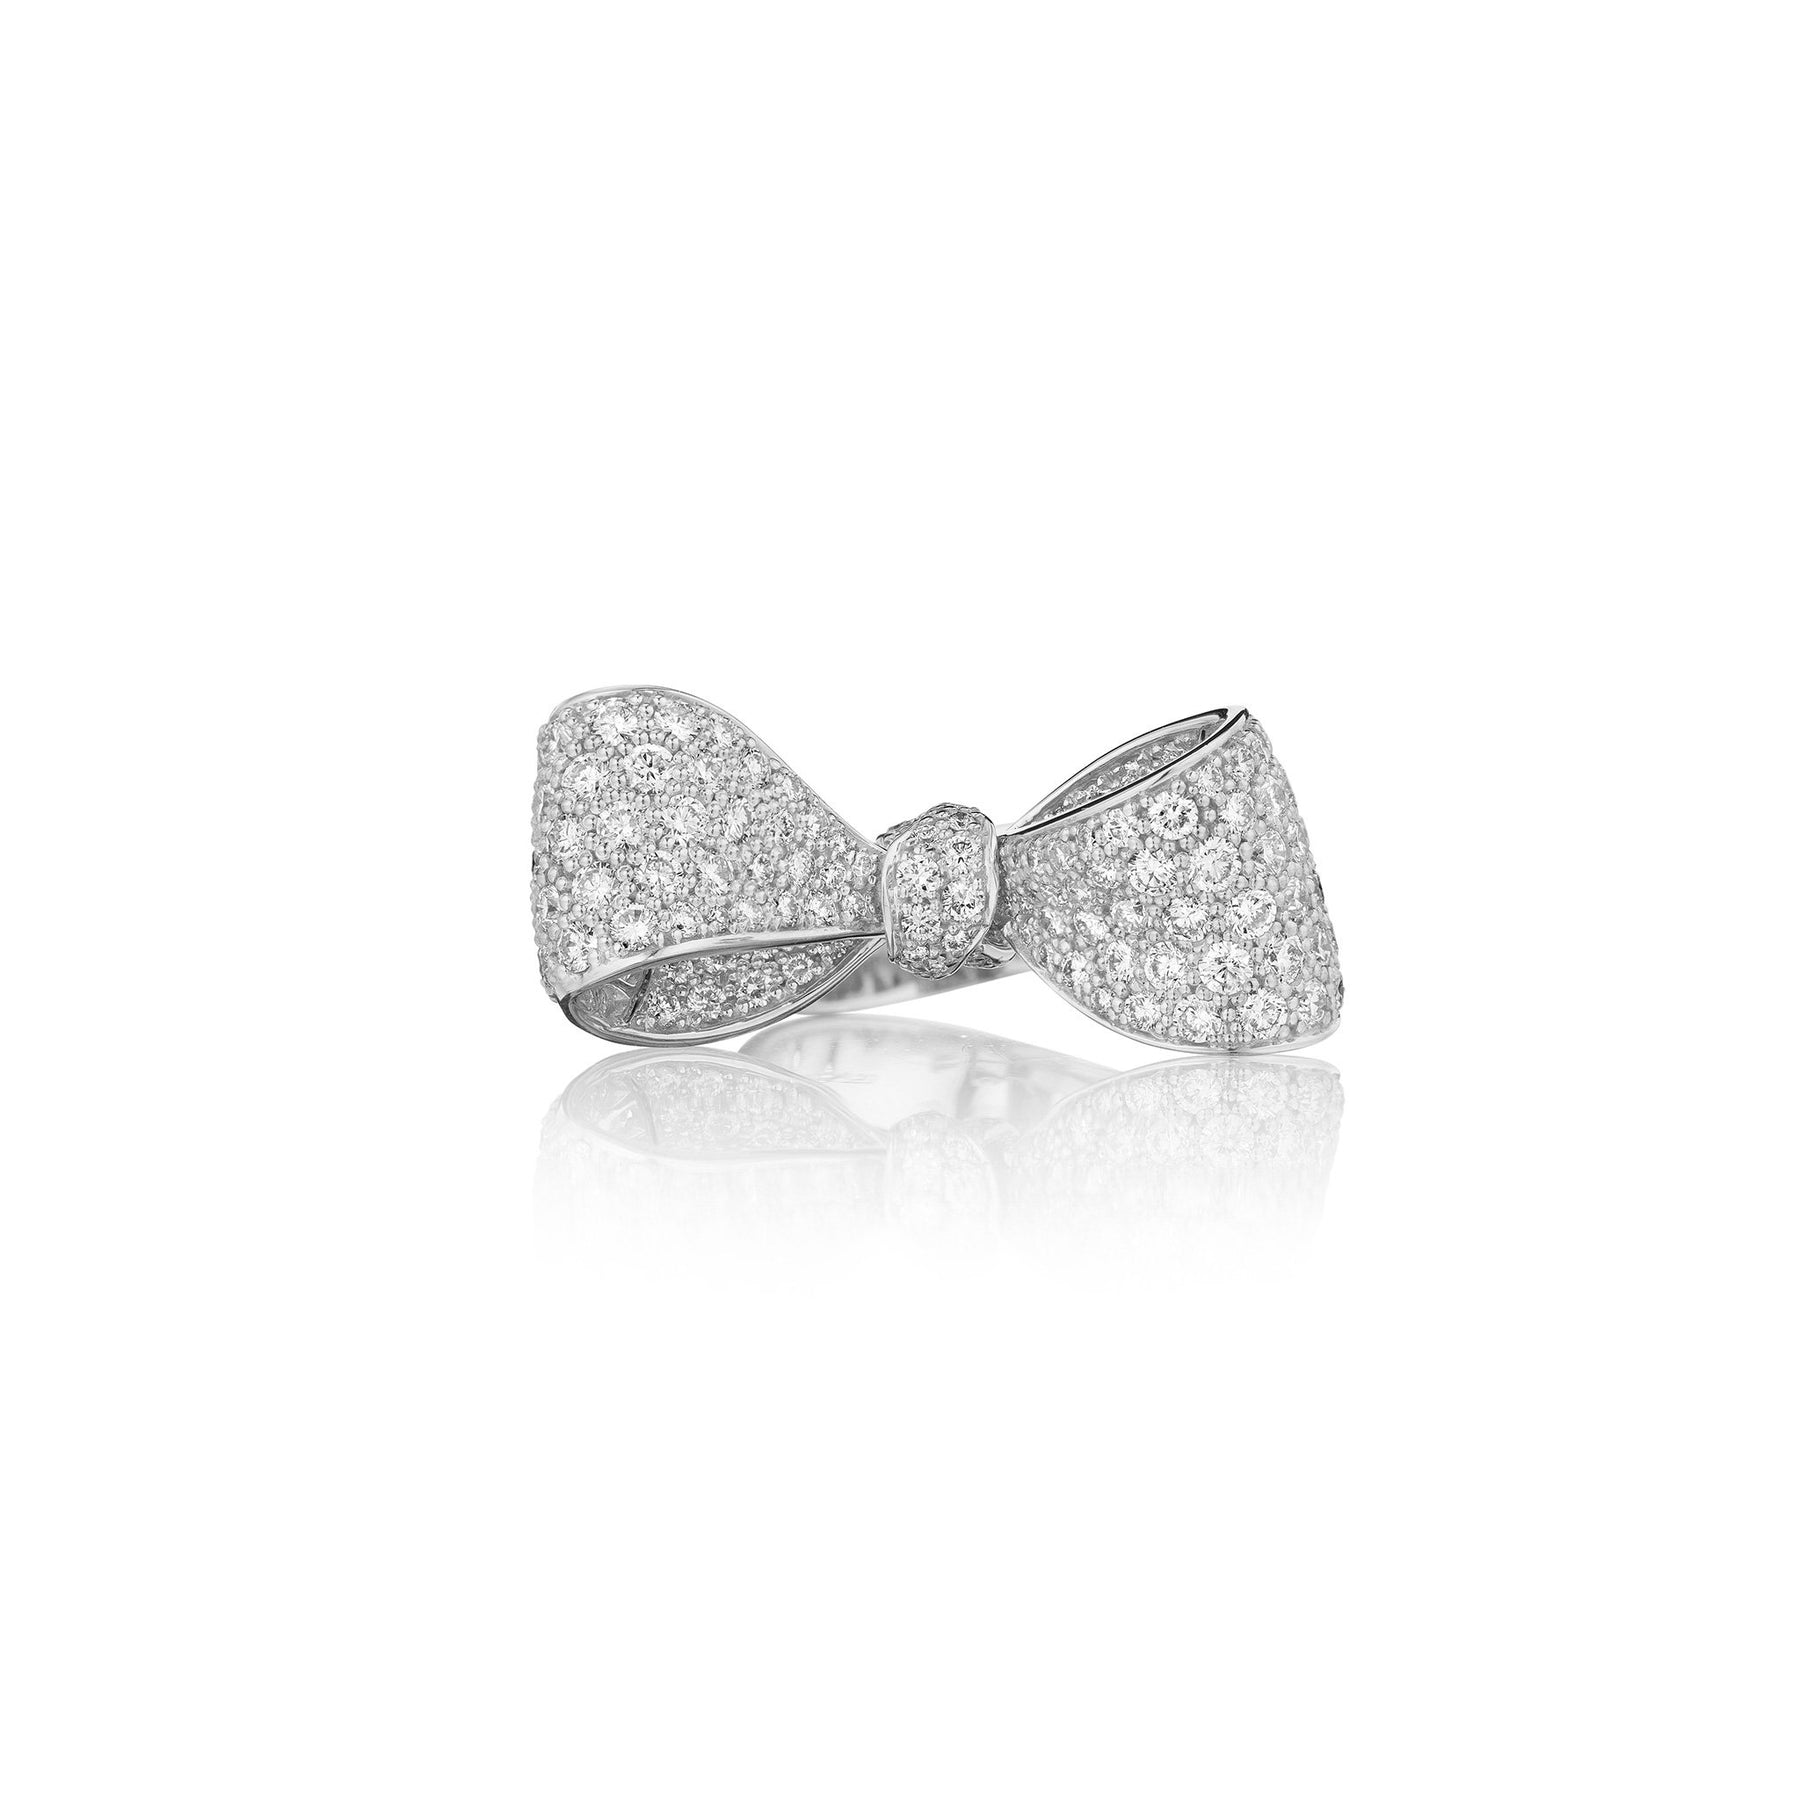 Mimi-So-Medium-Diamond-Bow-Ring_18k White Gold